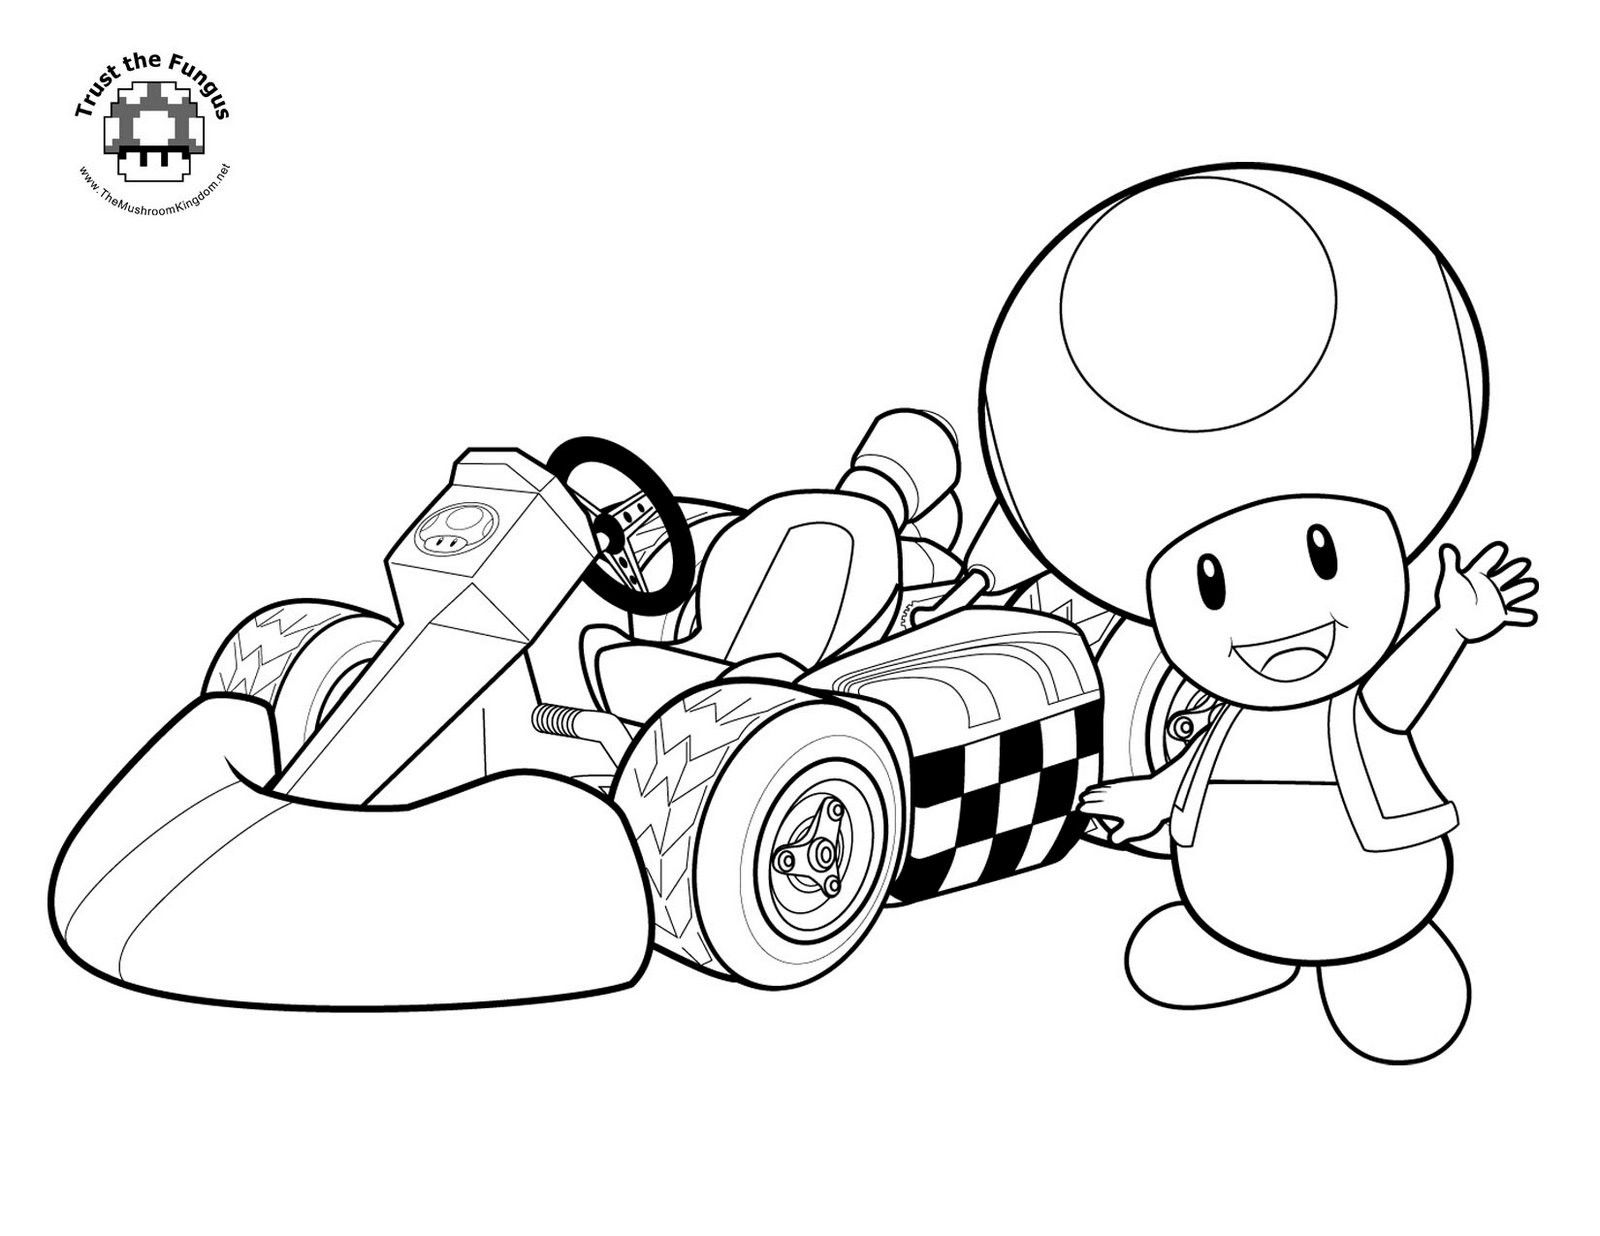 Toad Mario Kart coloring page print | Adult Coloring Pages *The BEST ...